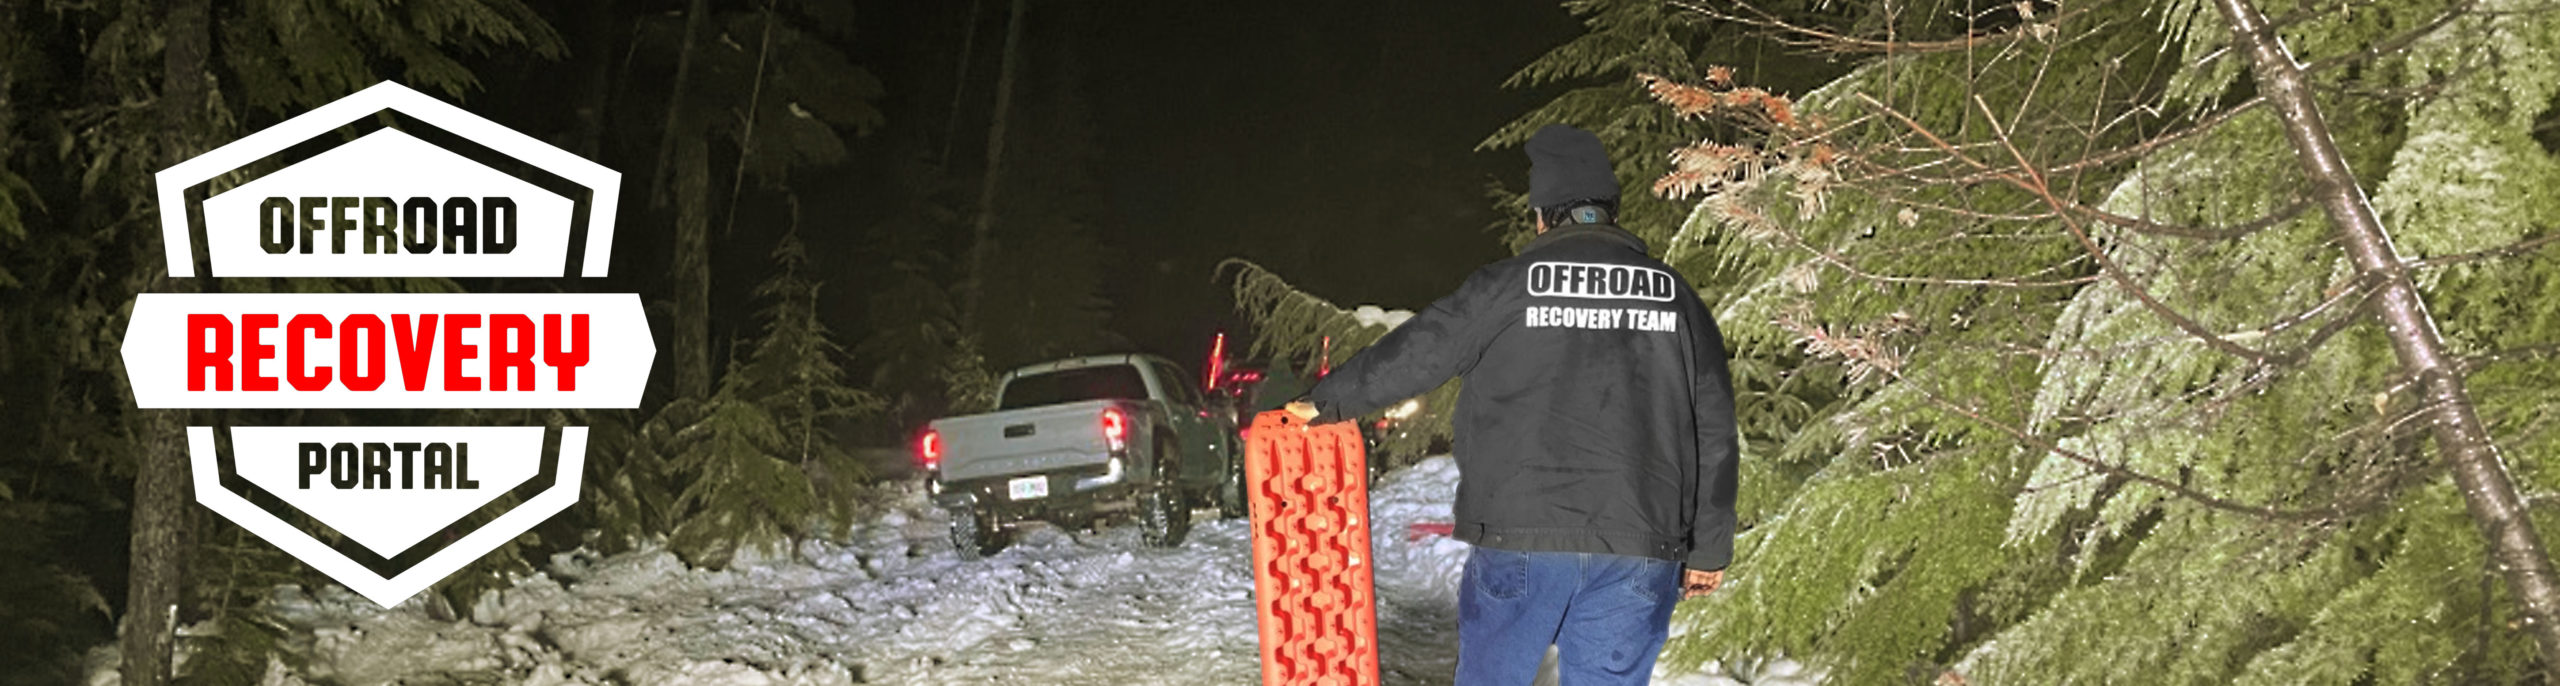 Offroad Recovery Portal